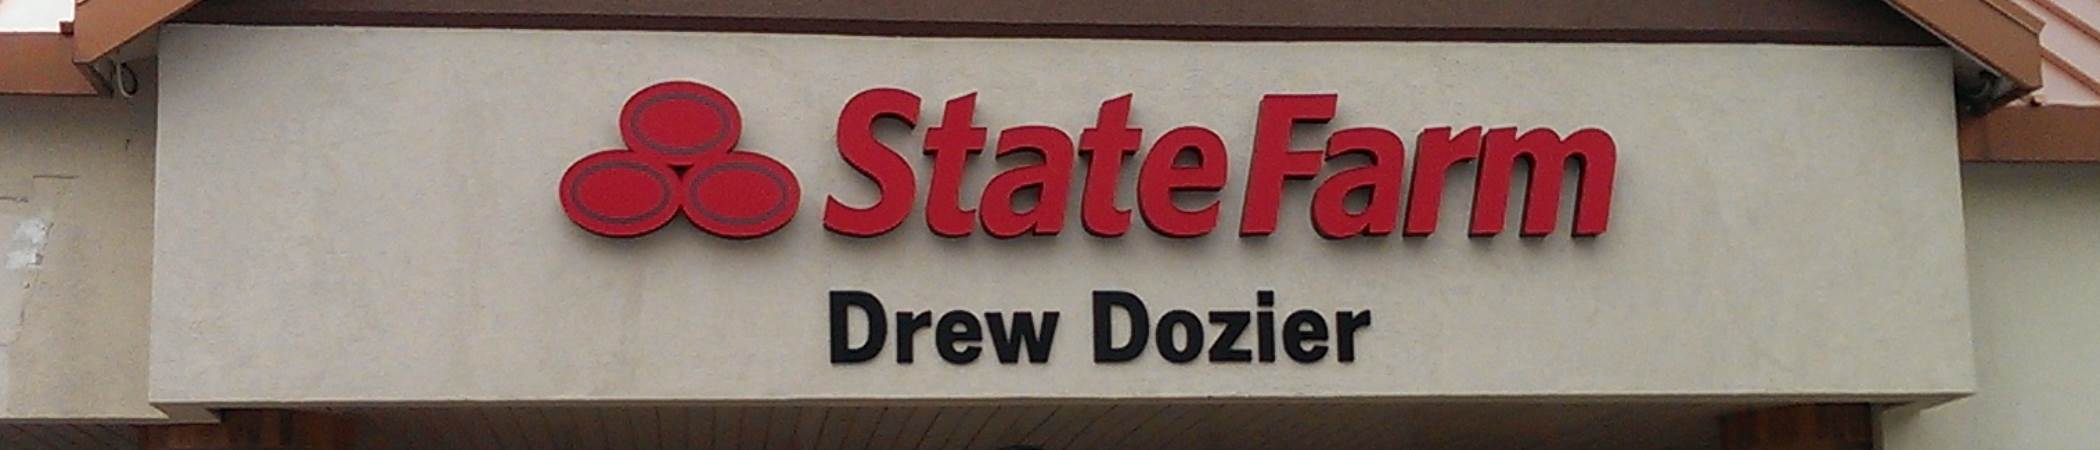 Drew Dozier State Farm Insurance (317) 787-6311 | Offering Home, Life, Auto Insurance, and more